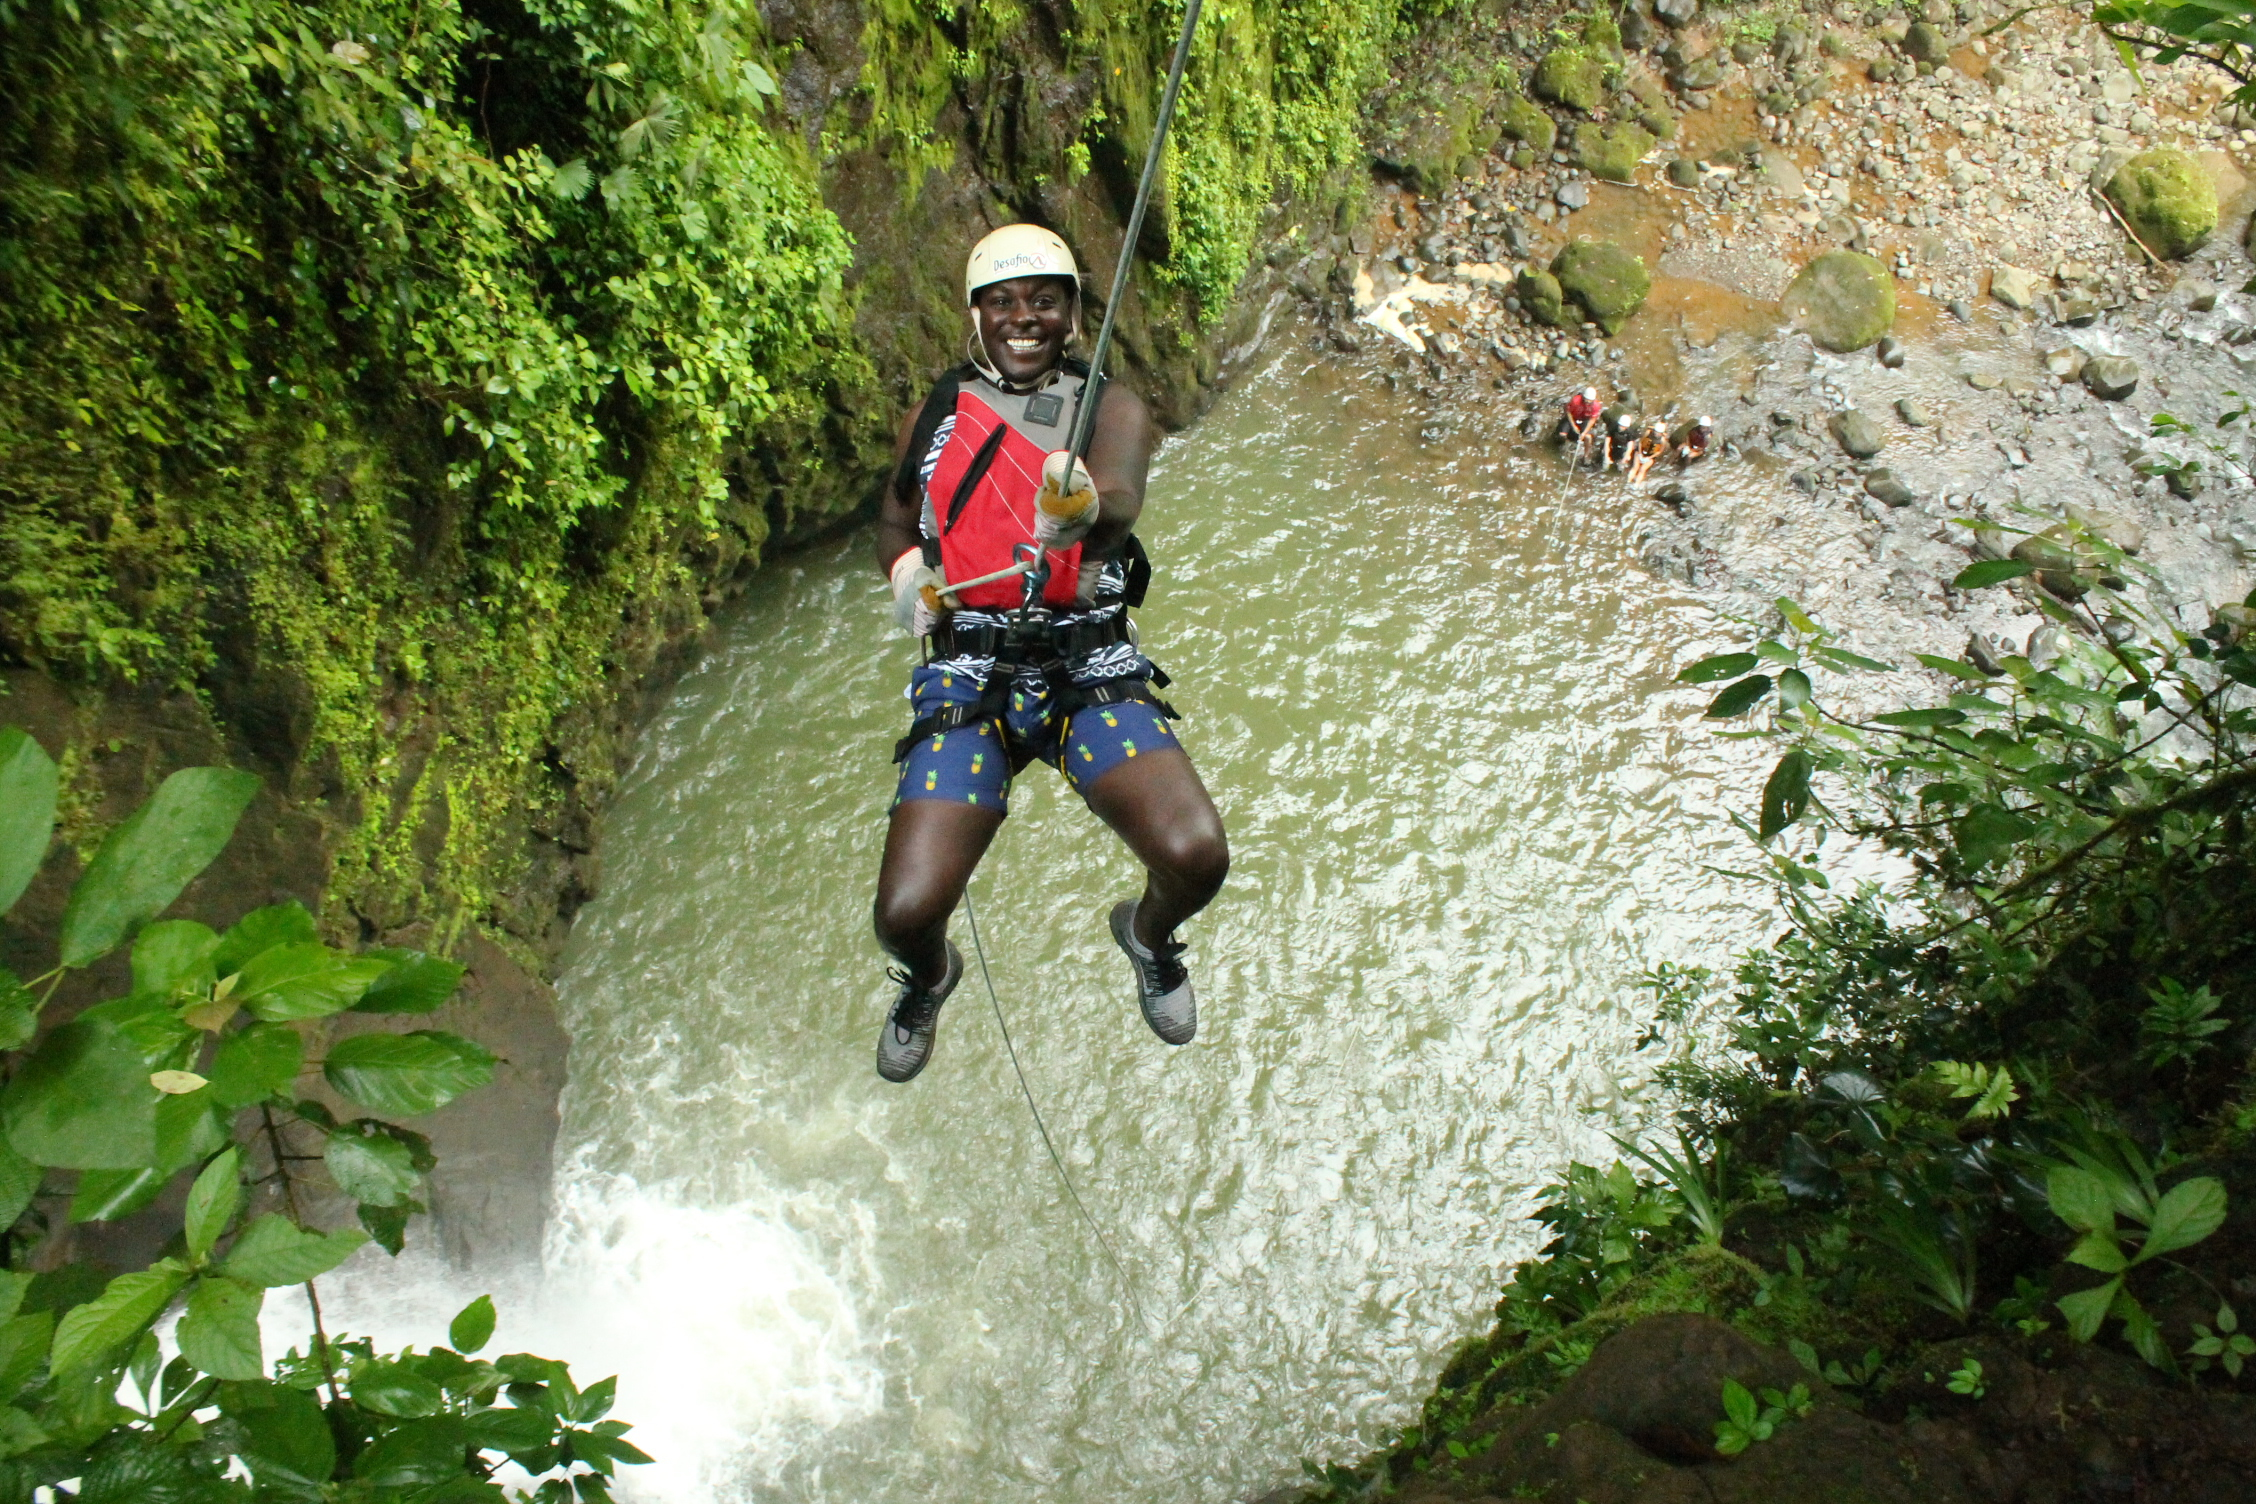 Conquer your fears! The Most Extreme Combo tour in Costa Rica